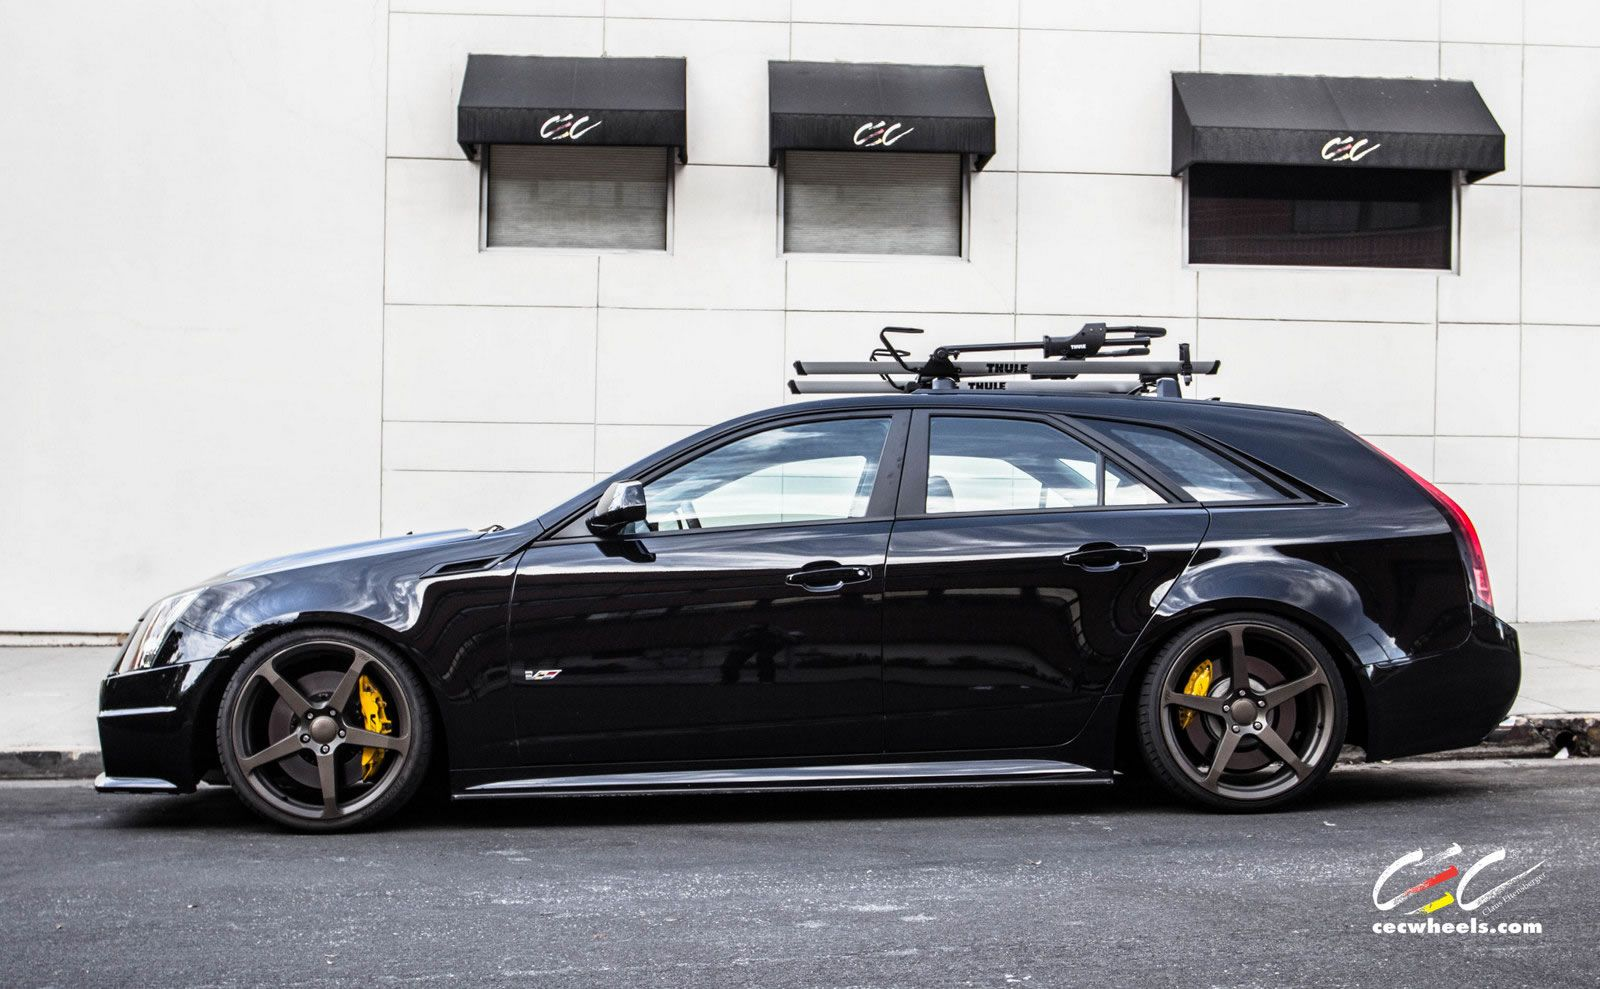 cadillac cts v wagon with staggered 20 hot rods pinterest cadillac cts cadillac and cars. Black Bedroom Furniture Sets. Home Design Ideas